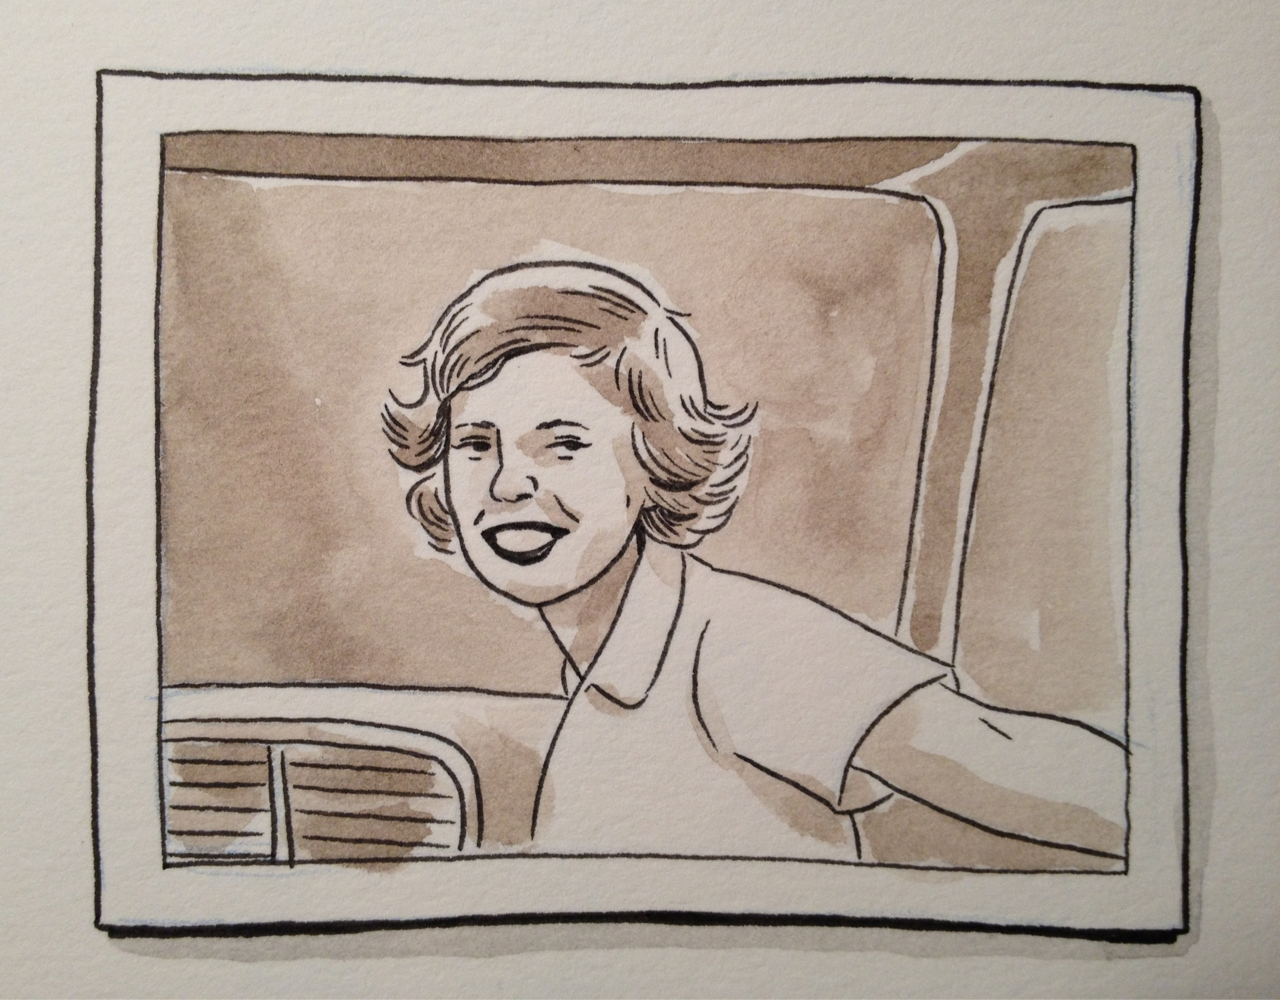 Sketched from an old photograph of my grandmother, here at her house. What a babe.